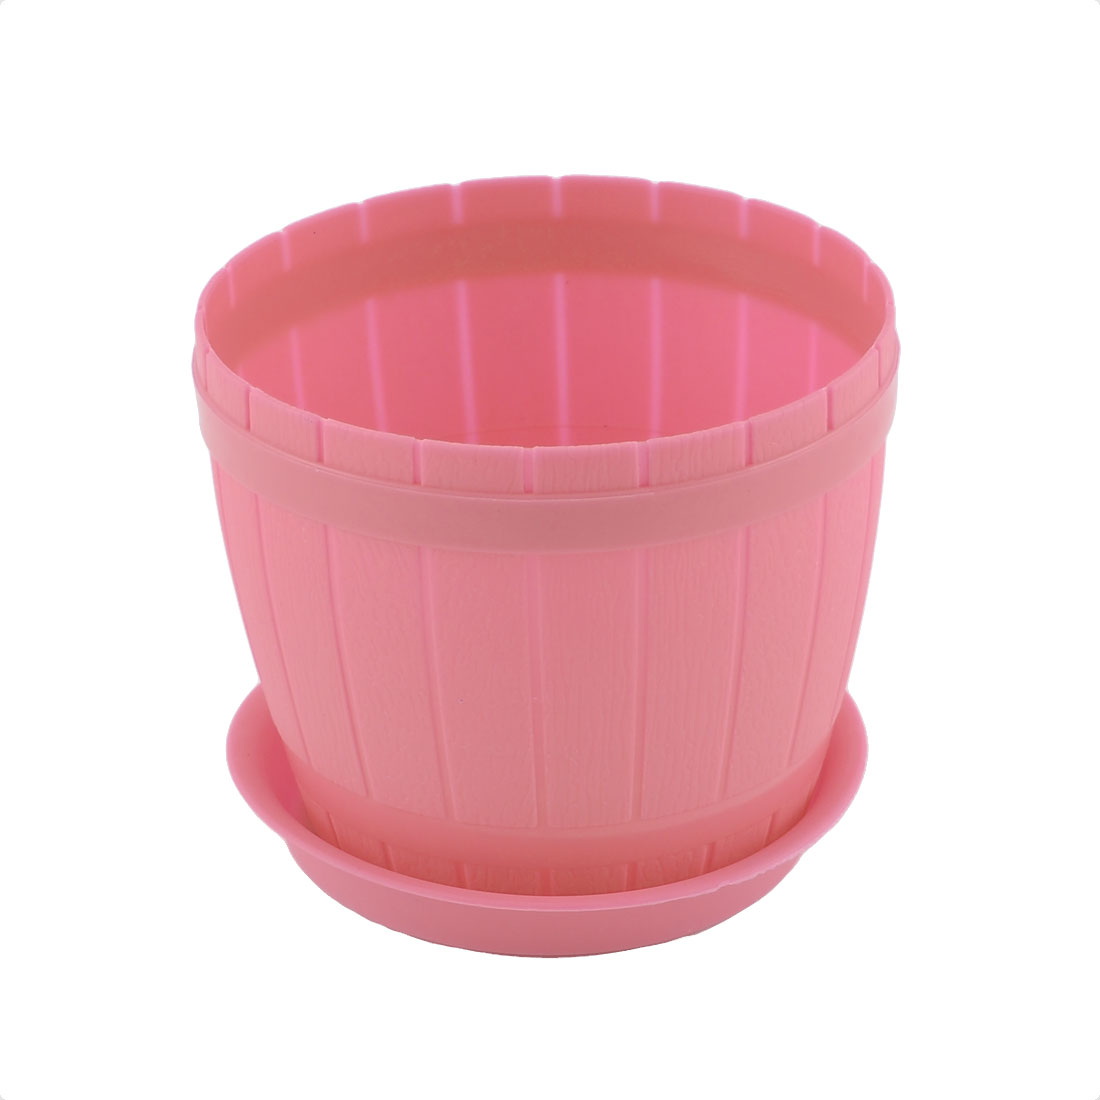 Balcony Garden Office Plastic Barrel Shape Plant Flower Pot Holder Pink w Tray